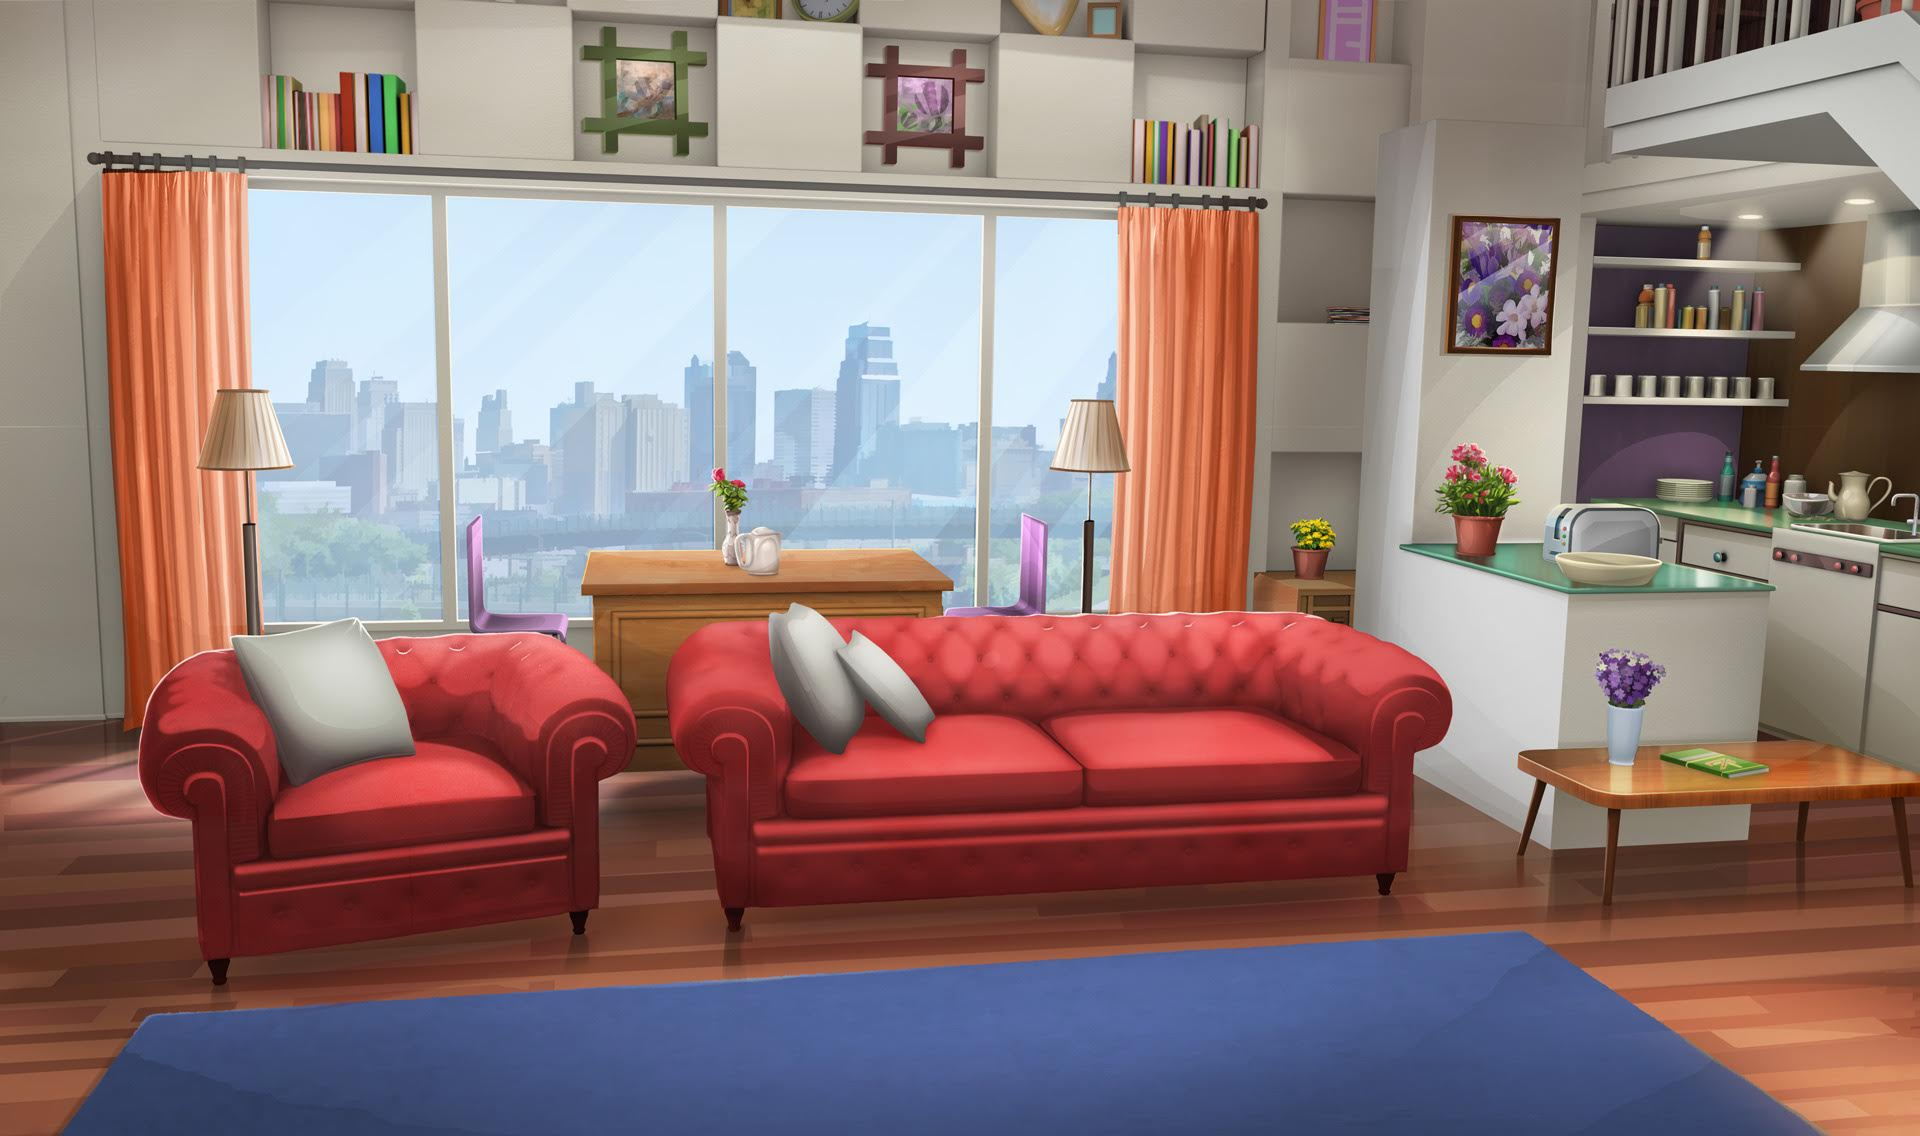 Int Fancy Apartment Living Room Day Episode Backgrounds